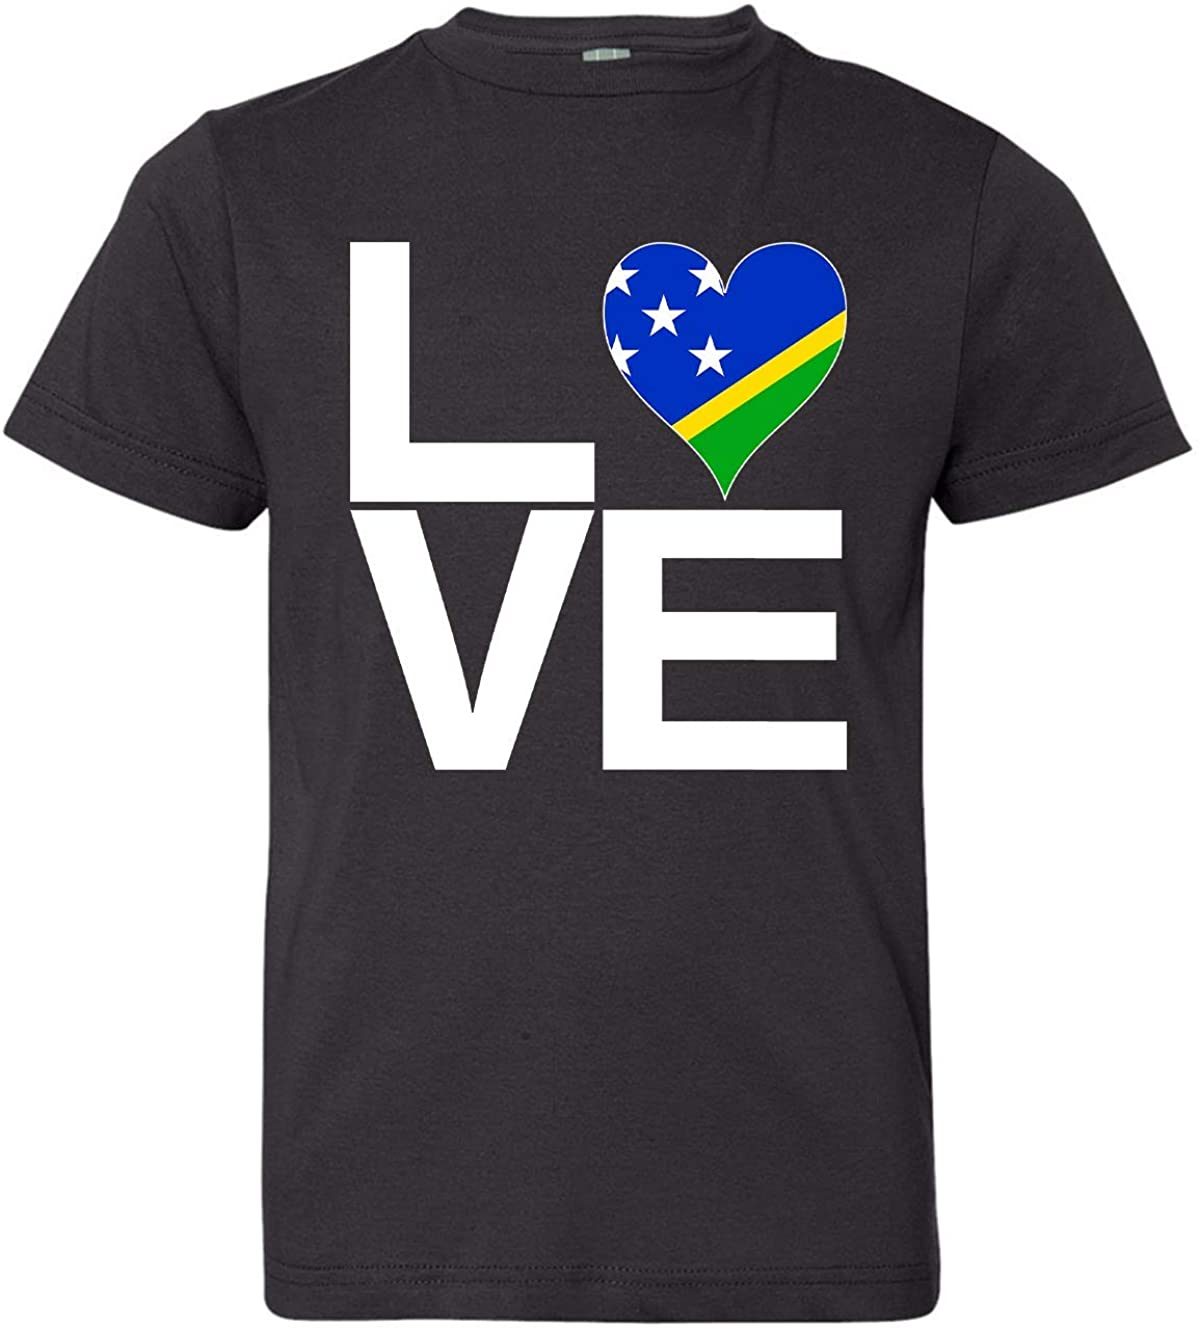 Tenacitee Girl's Youth Love Block Solomon Islands Heart T-Shirt